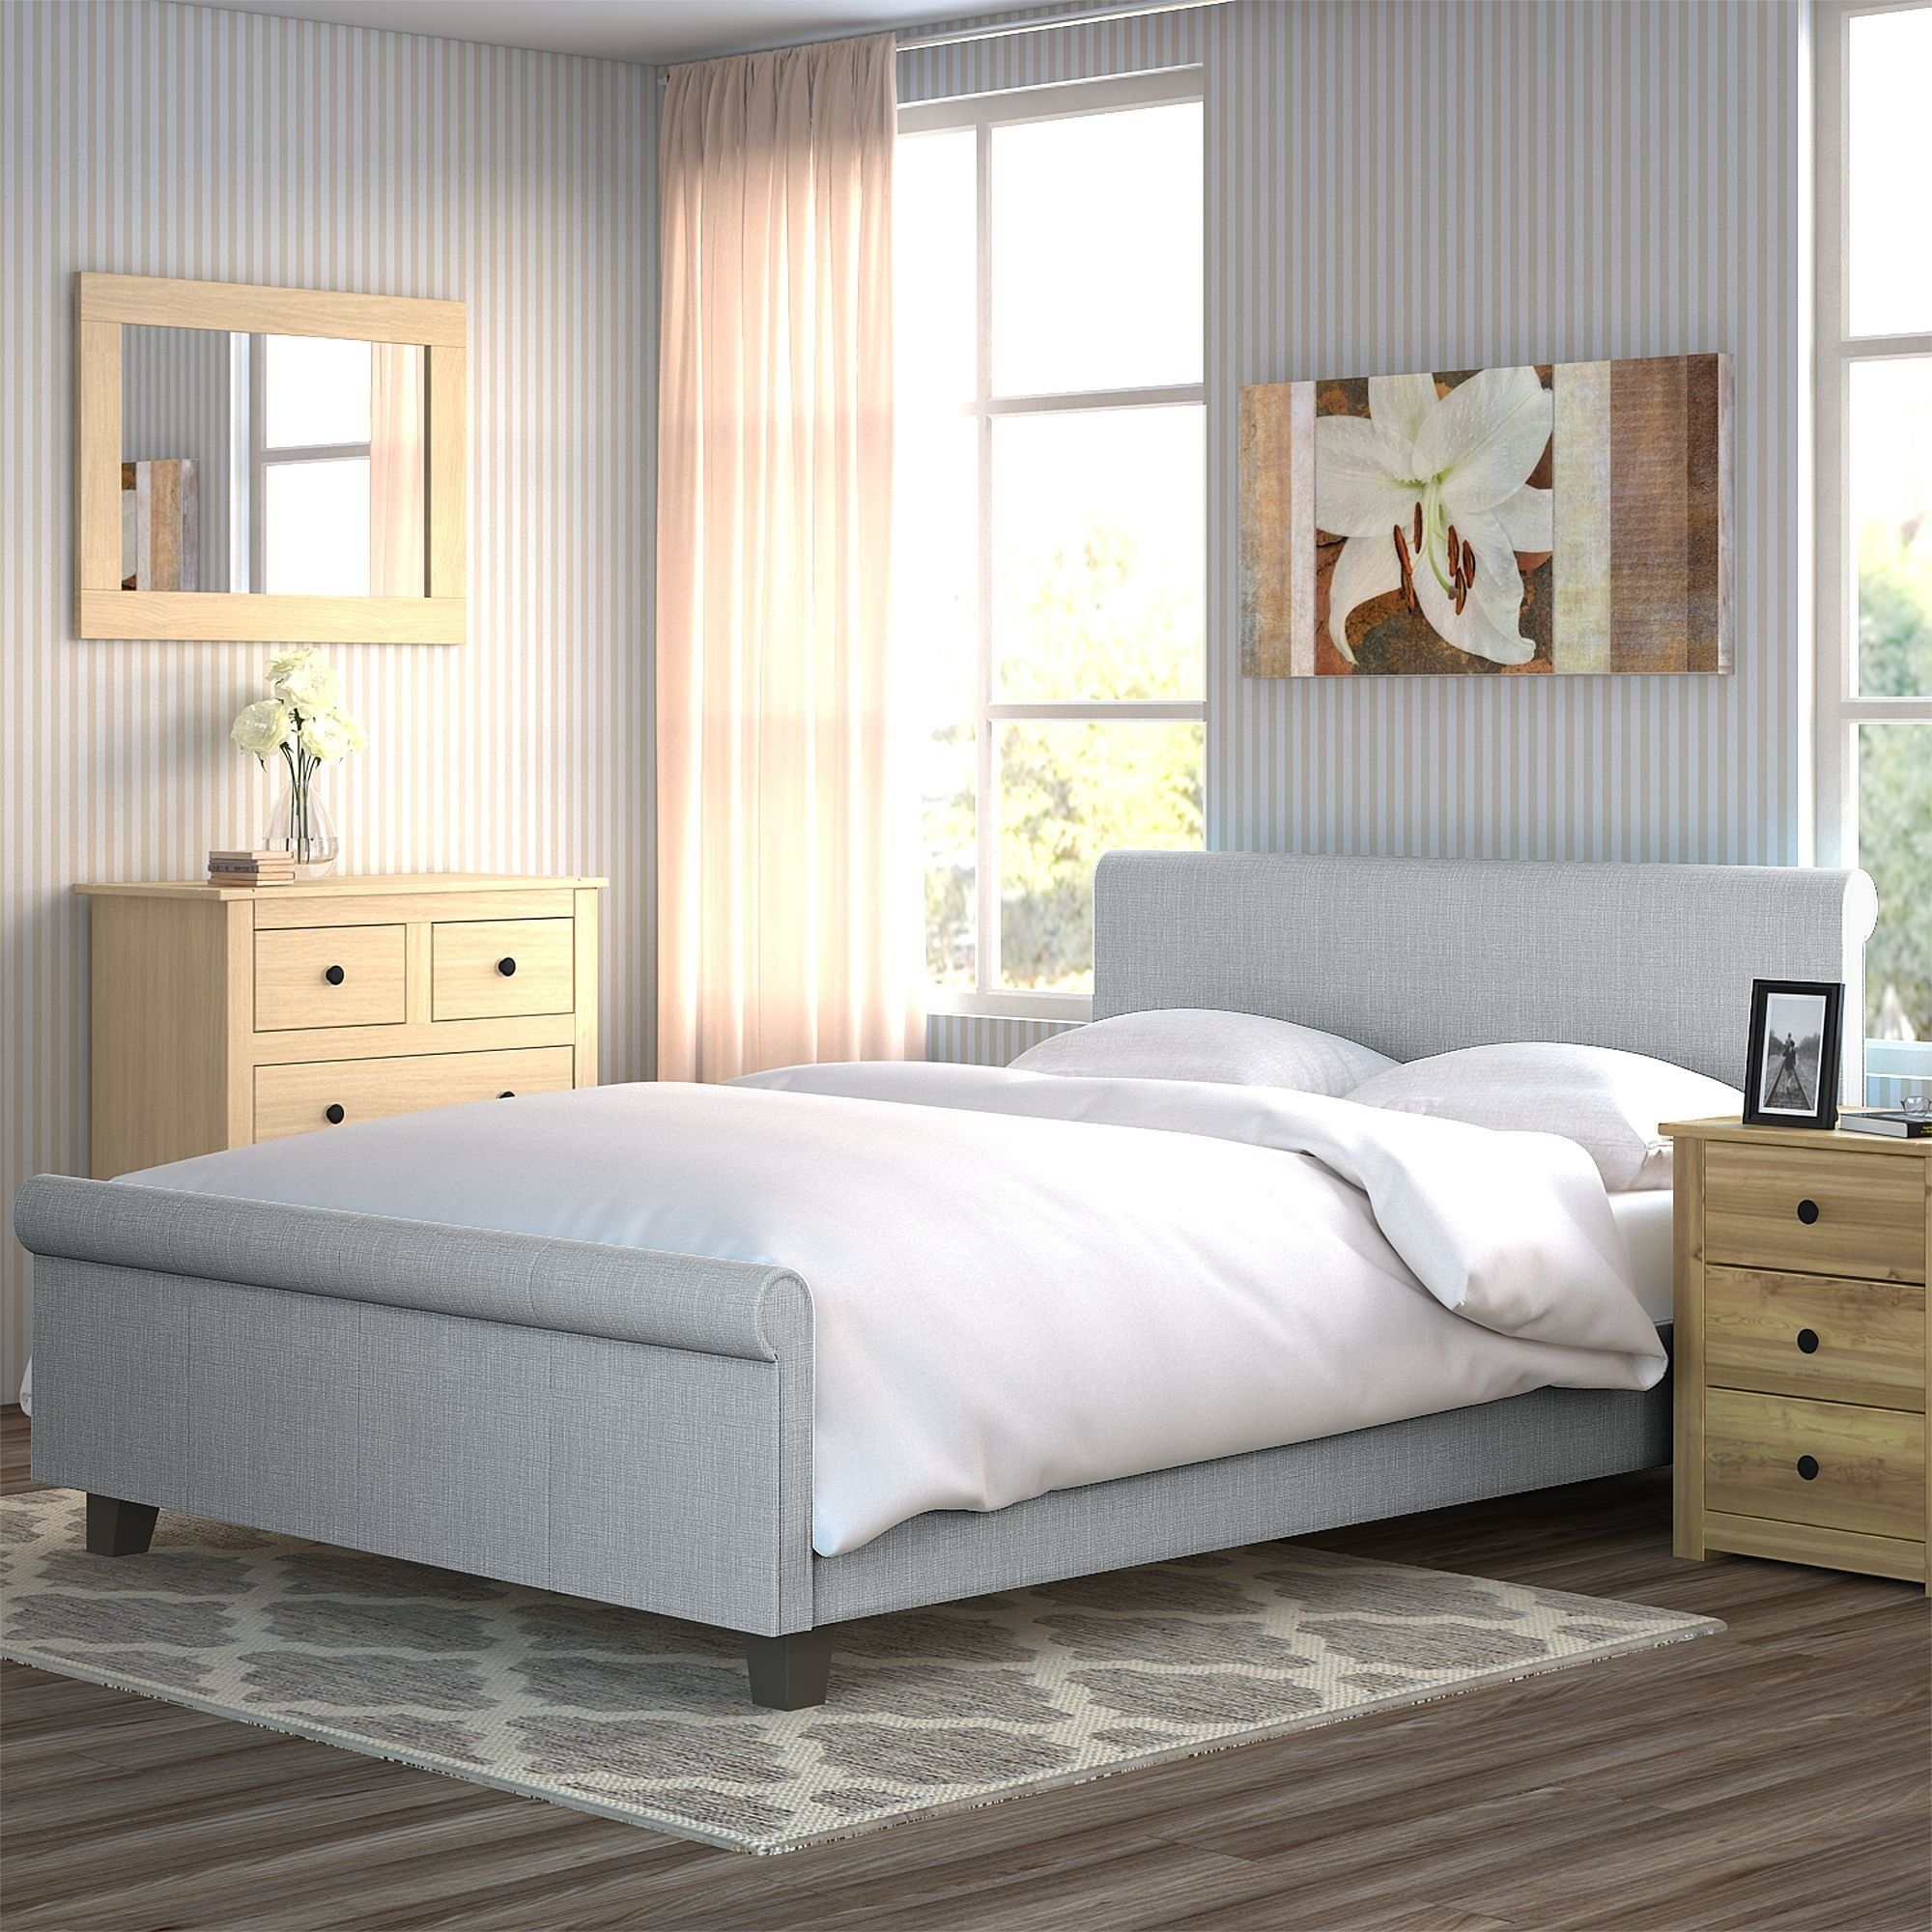 Taft Furniture Bedroom Sets Sleigh Bed Framesleigh